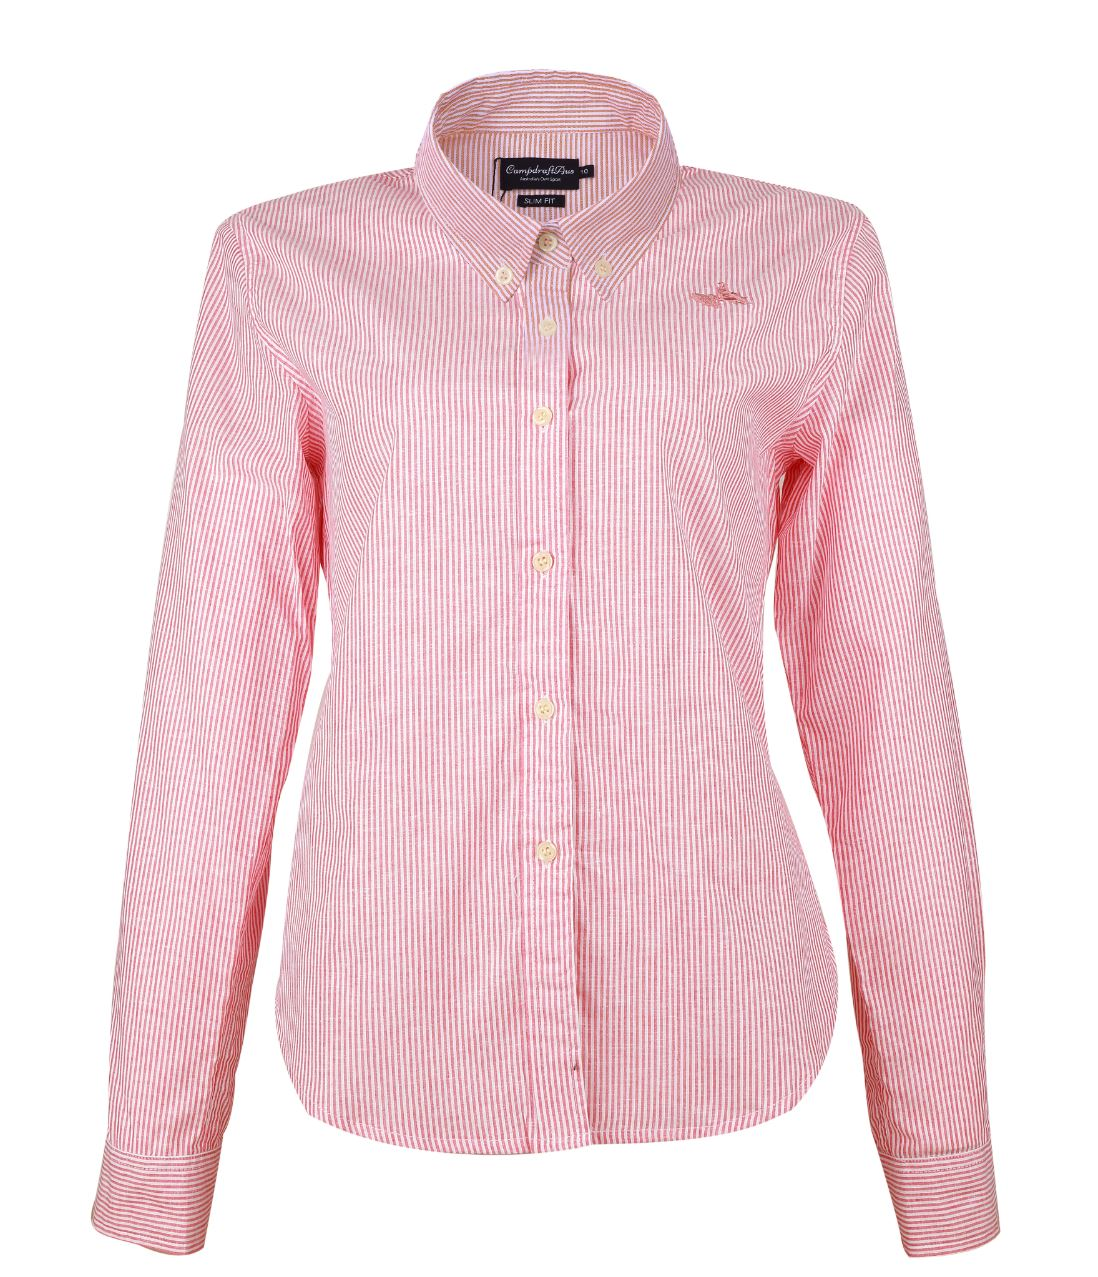 Pink/White Pinstriped Long Sleeve Ladies Shirt